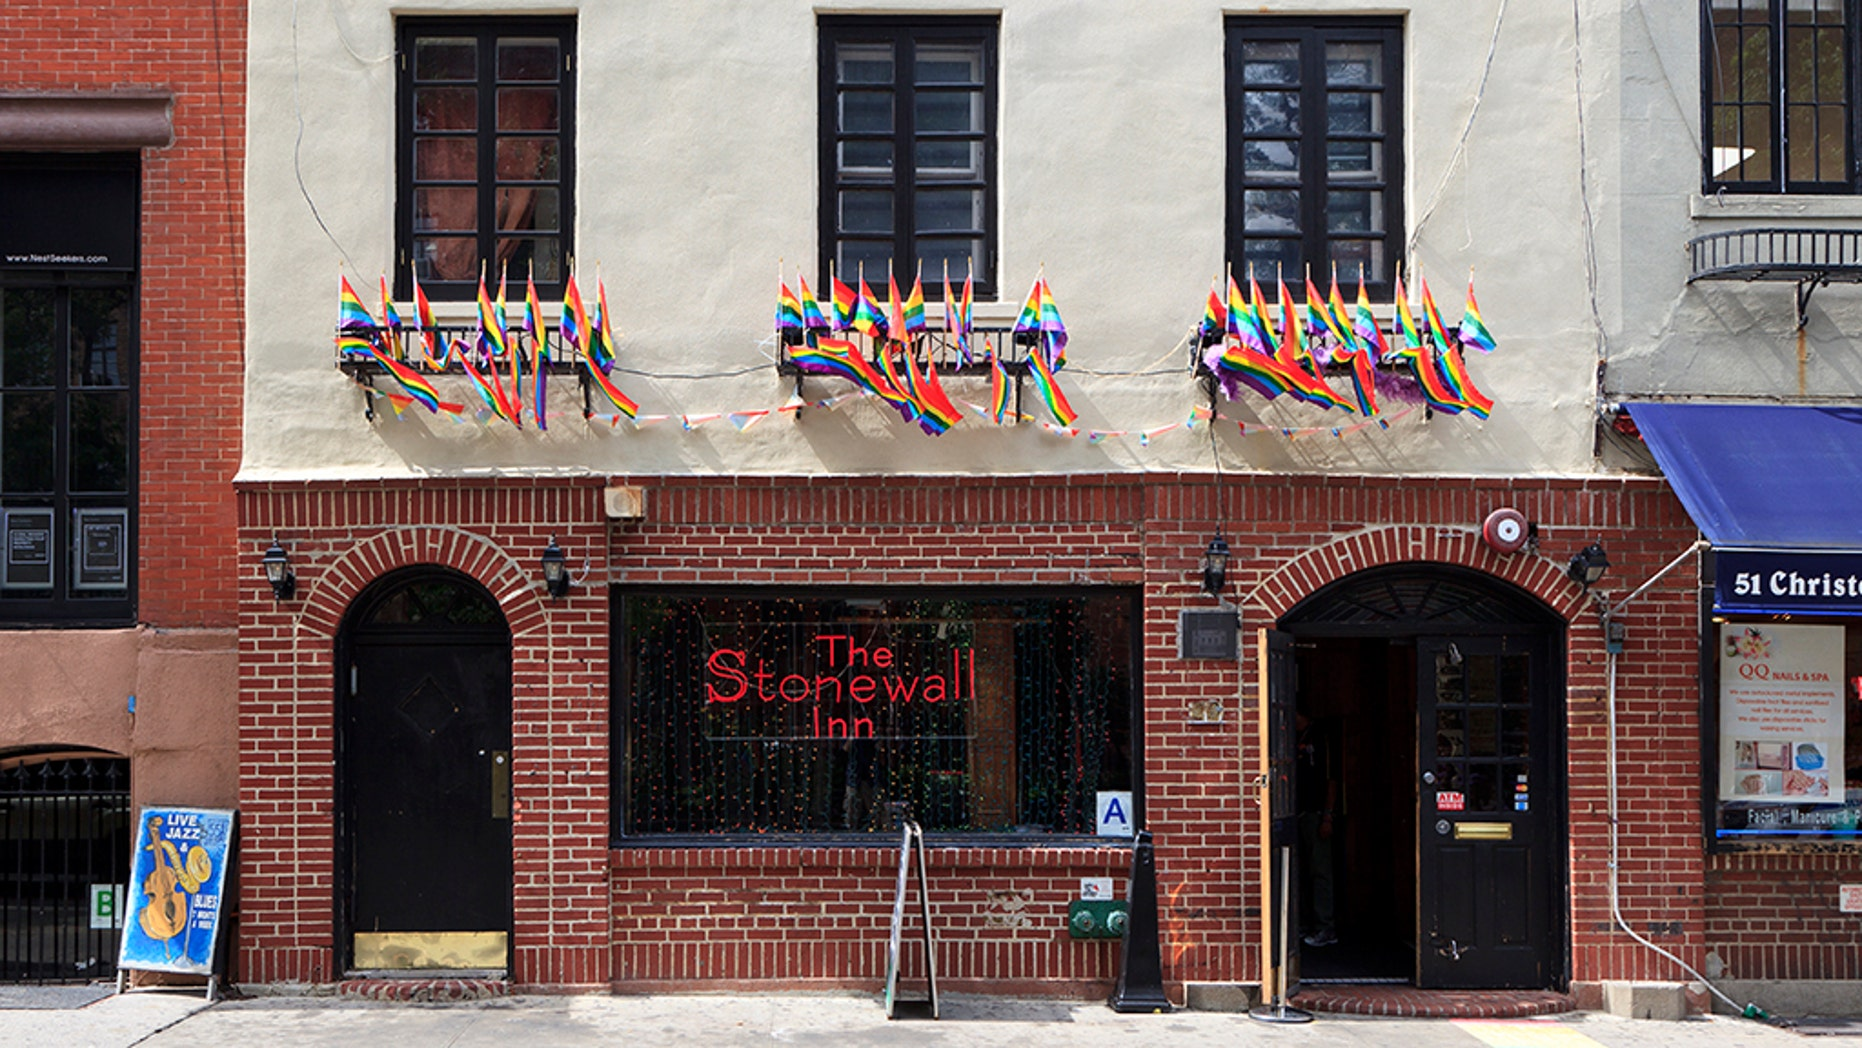 The Stonewall Inn is a bar and tavern in Greenwich Village in New York City.